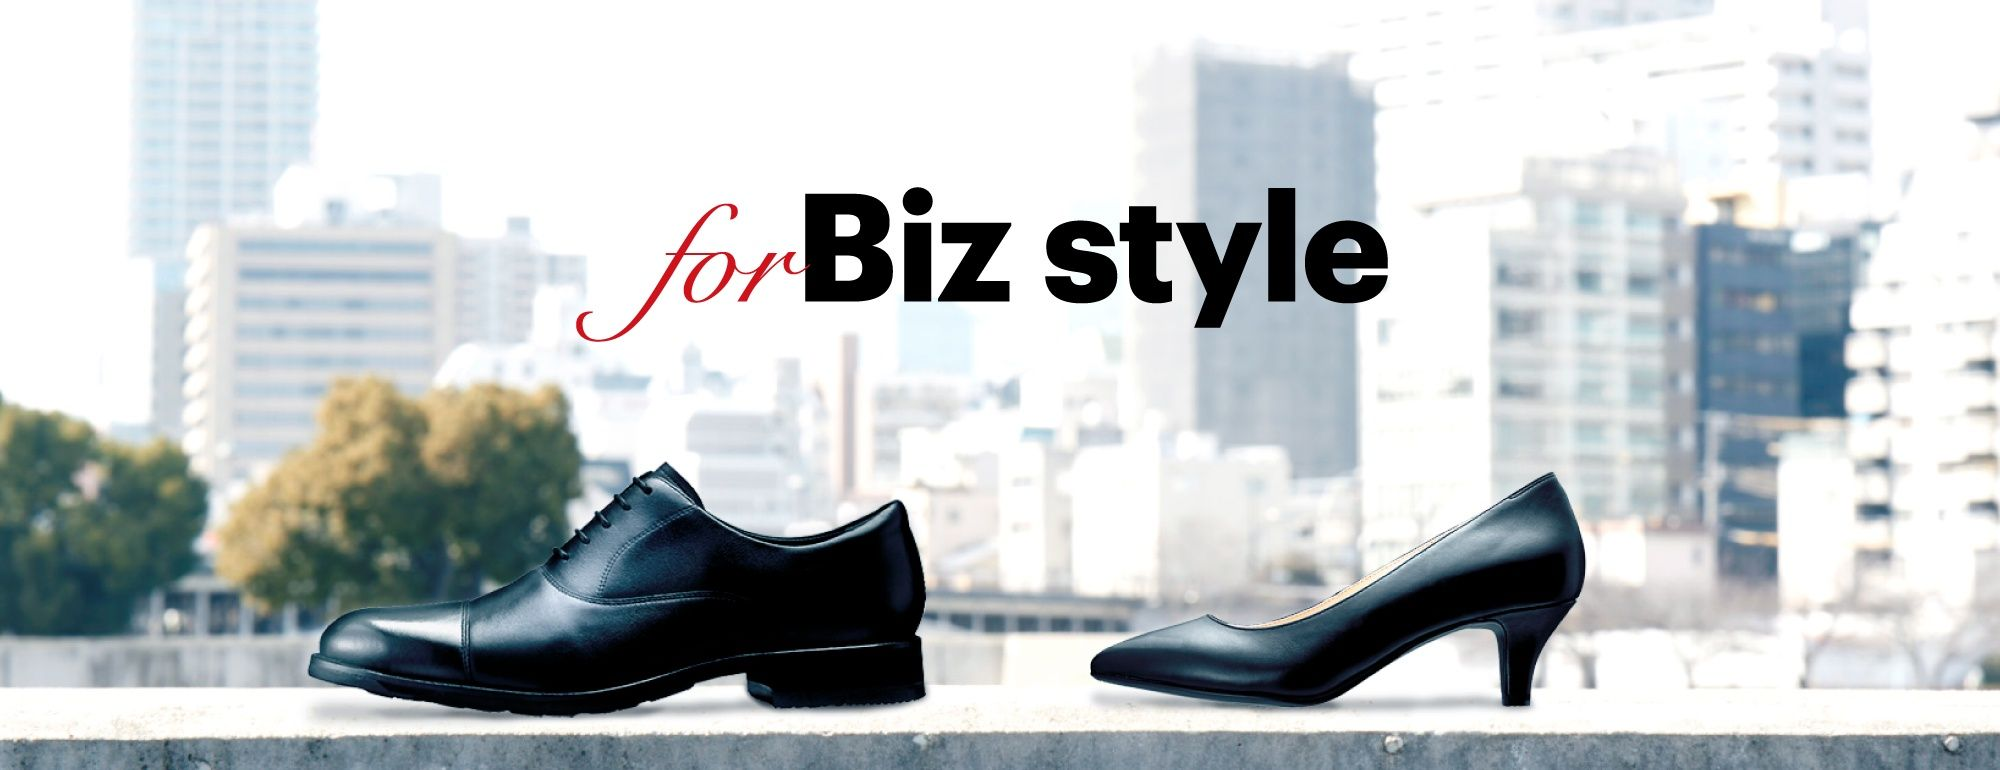 for Biz style